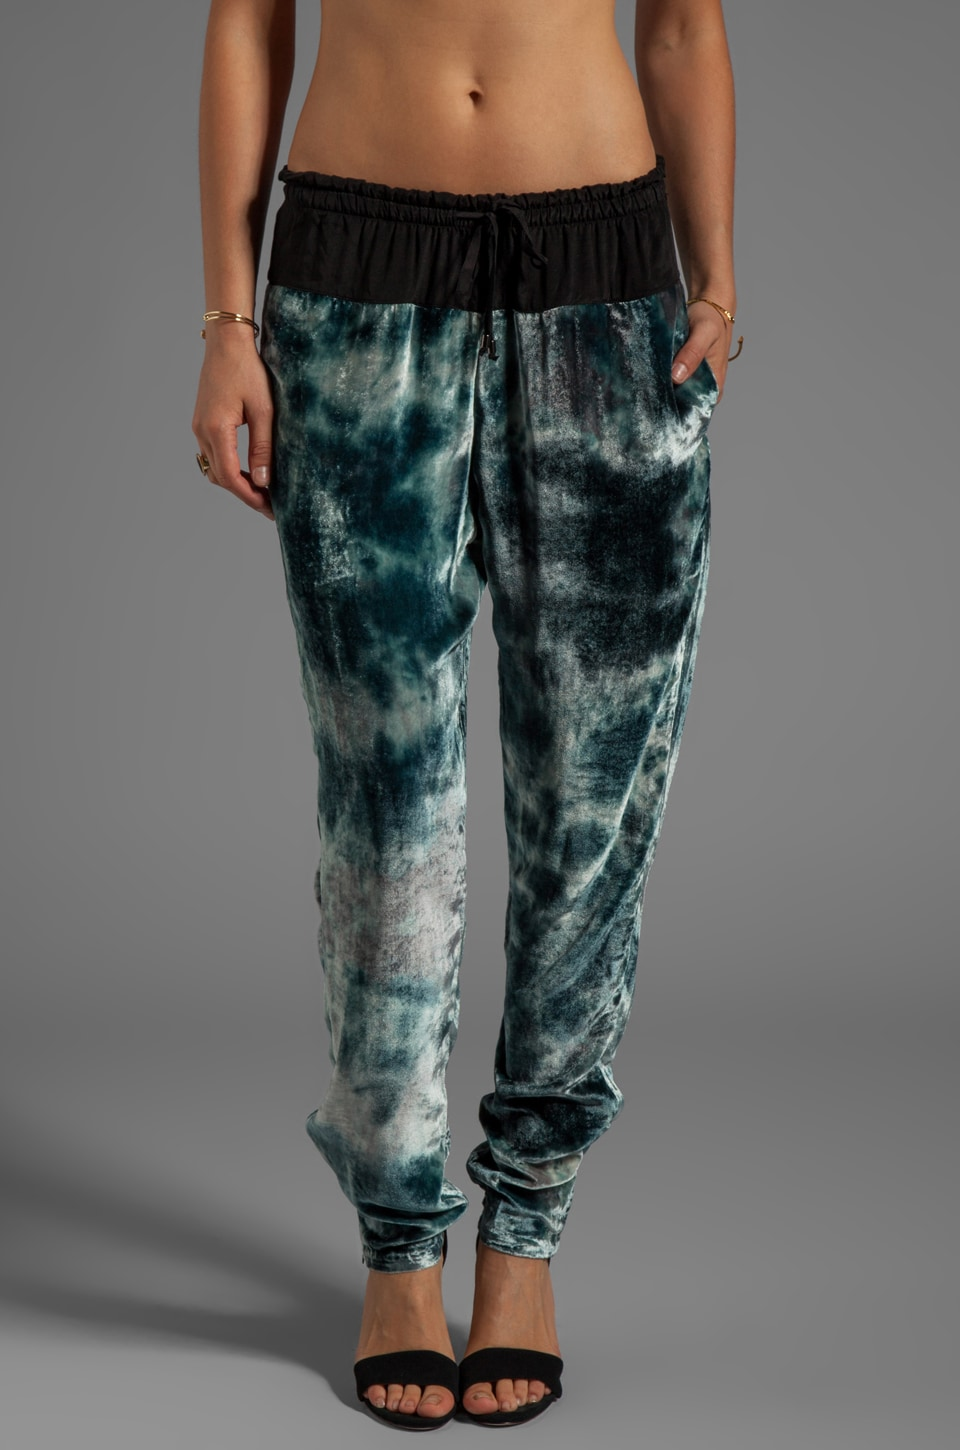 Gypsy 05 Velvet Tapered Drawstring Pant in Overcast